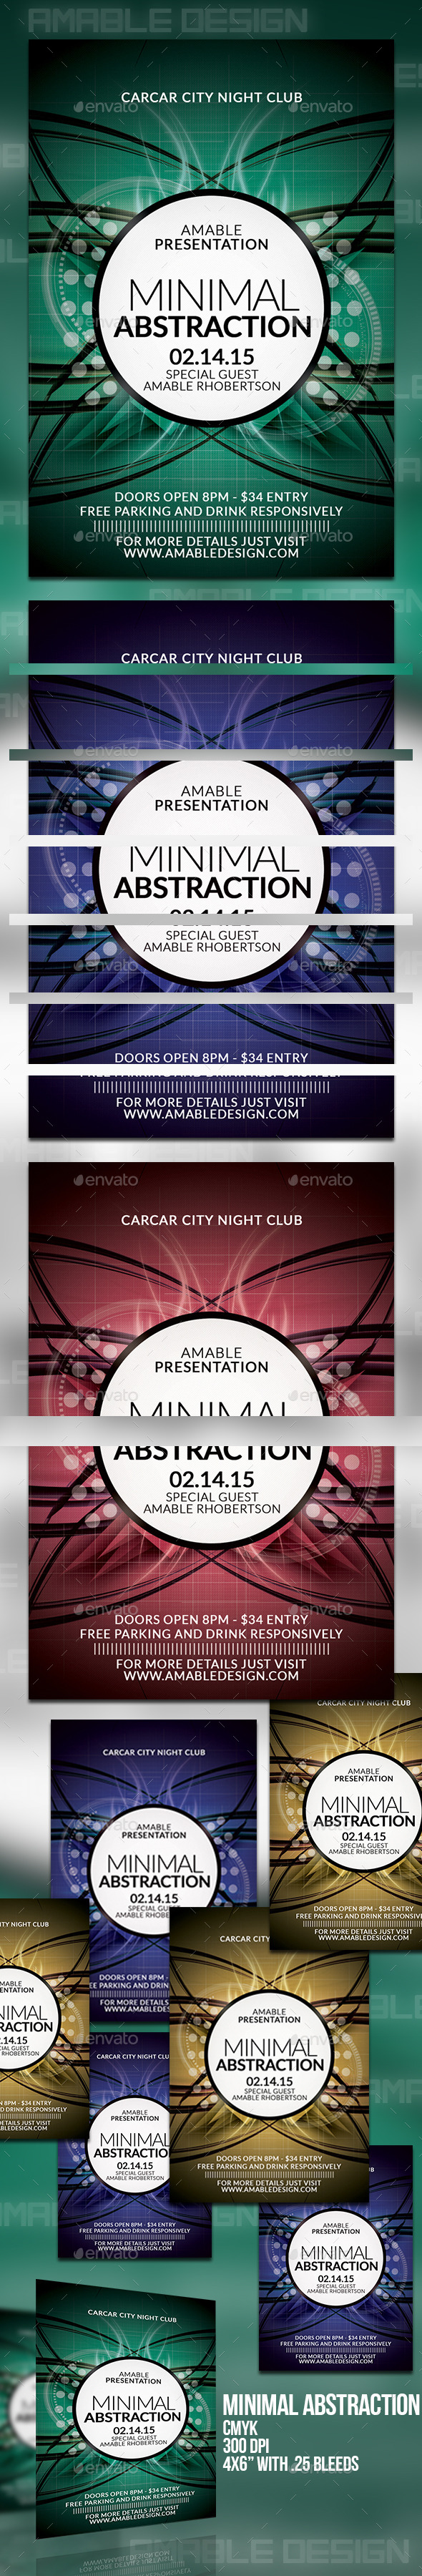 Minimal Abstraction Flyer - Clubs & Parties Events